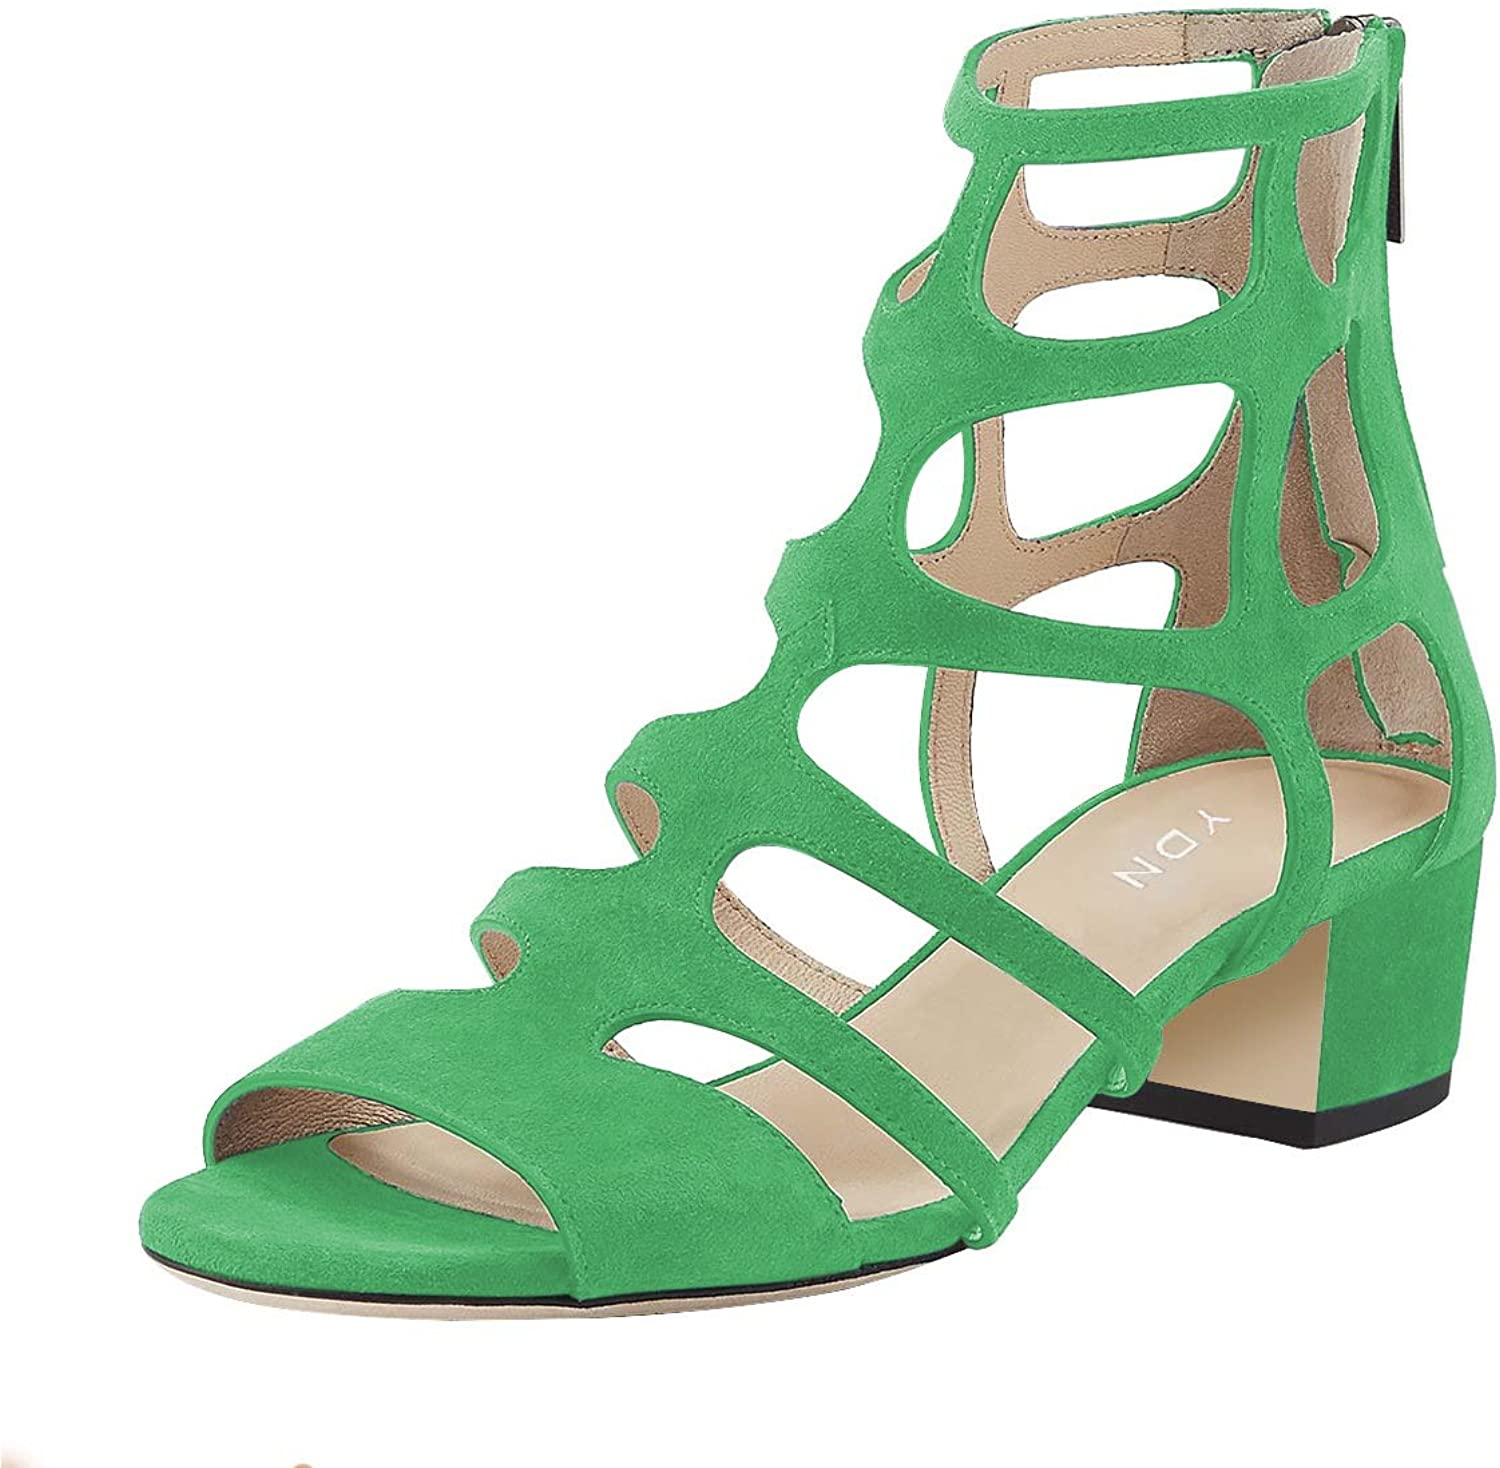 YDN Women Sexy Peep Toe Strappy Cutout Sandals Ankle High Block Low Heel Dress shoes with Zips